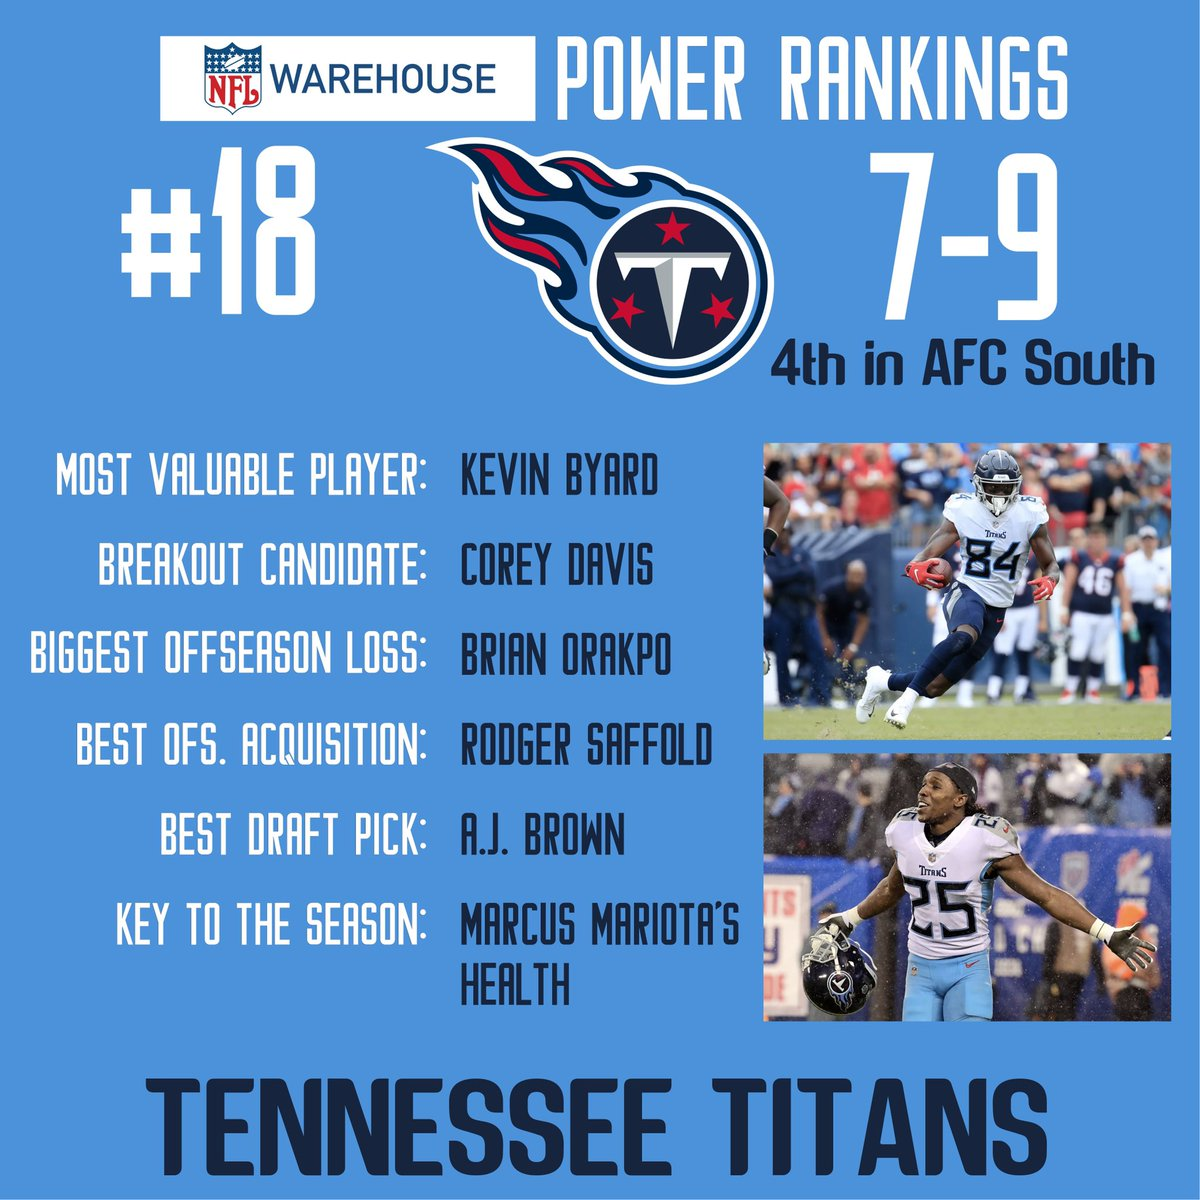 #18 in the NFL Warehouse 2019 Preseason Power Rankings are the Tennessee #Titans  #NFL #TennesseeTitans  #NFLWarehouse https://t.co/dvtaHb1PVi